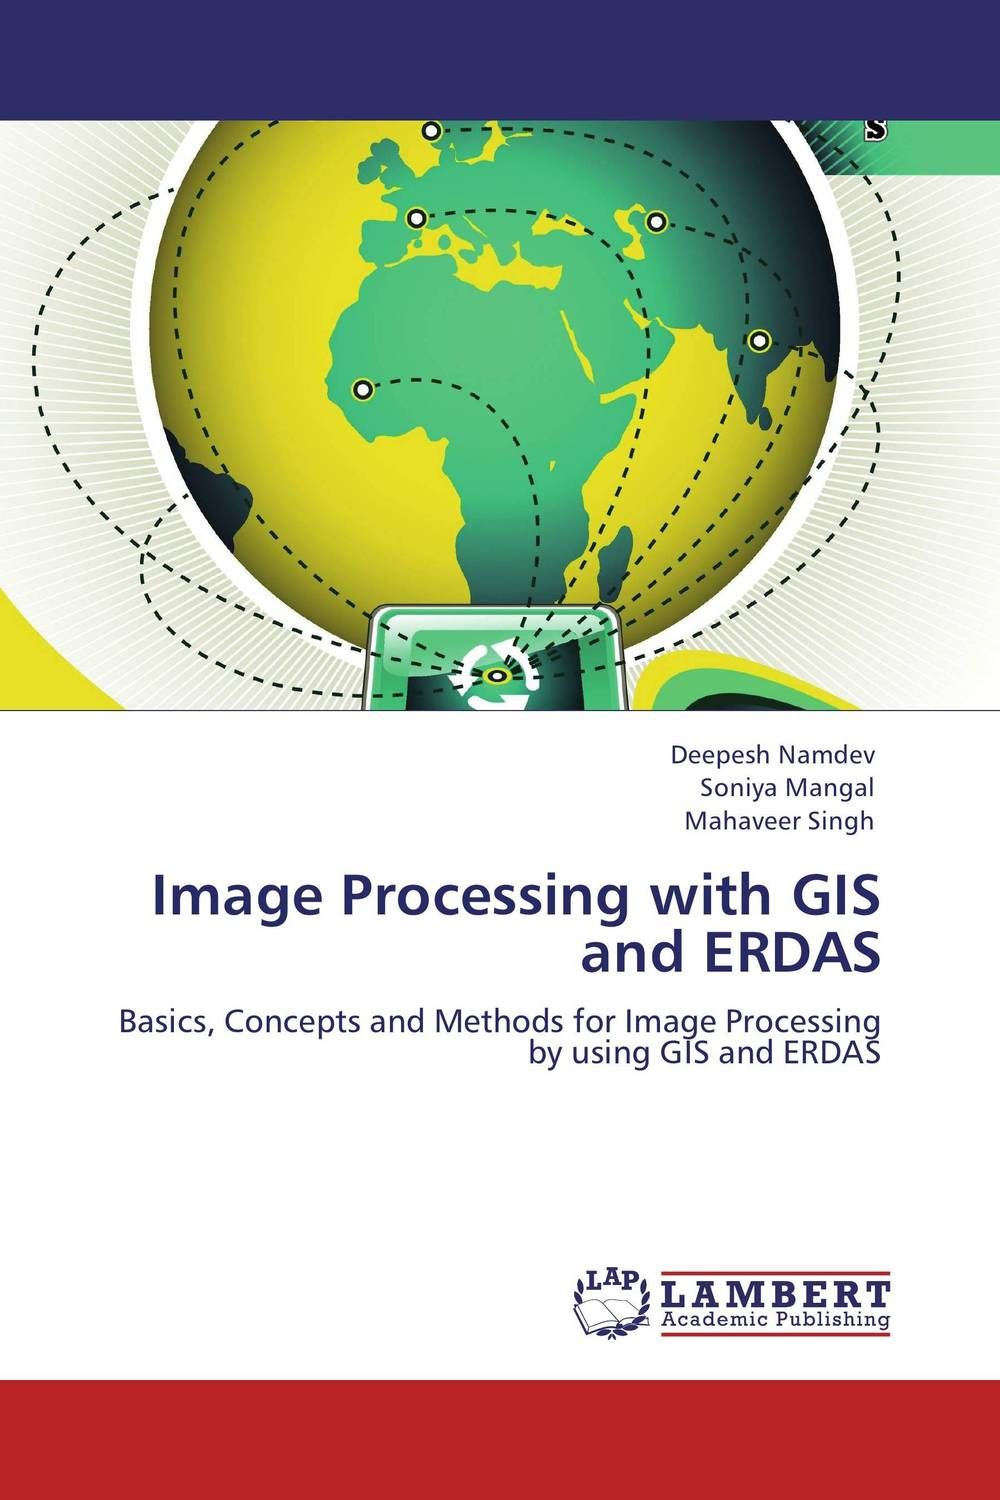 Image Processing with GIS and ERDAS gis